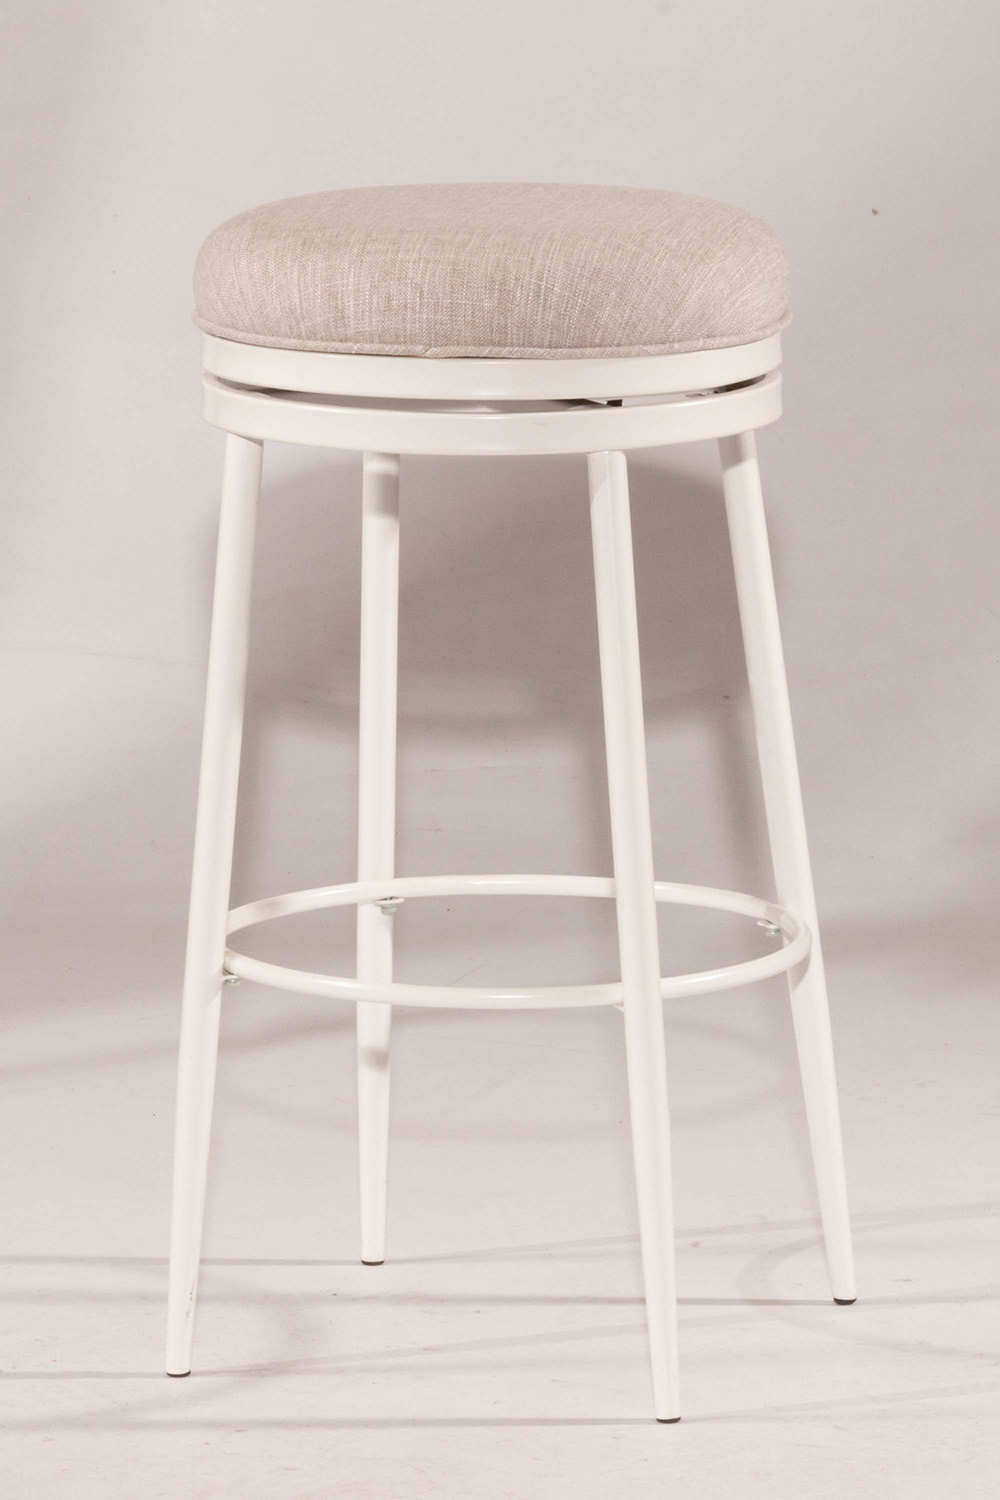 Swell Hillsdale Aubrie Swivel Backless Counter Stool White Silver Fabric Andrewgaddart Wooden Chair Designs For Living Room Andrewgaddartcom